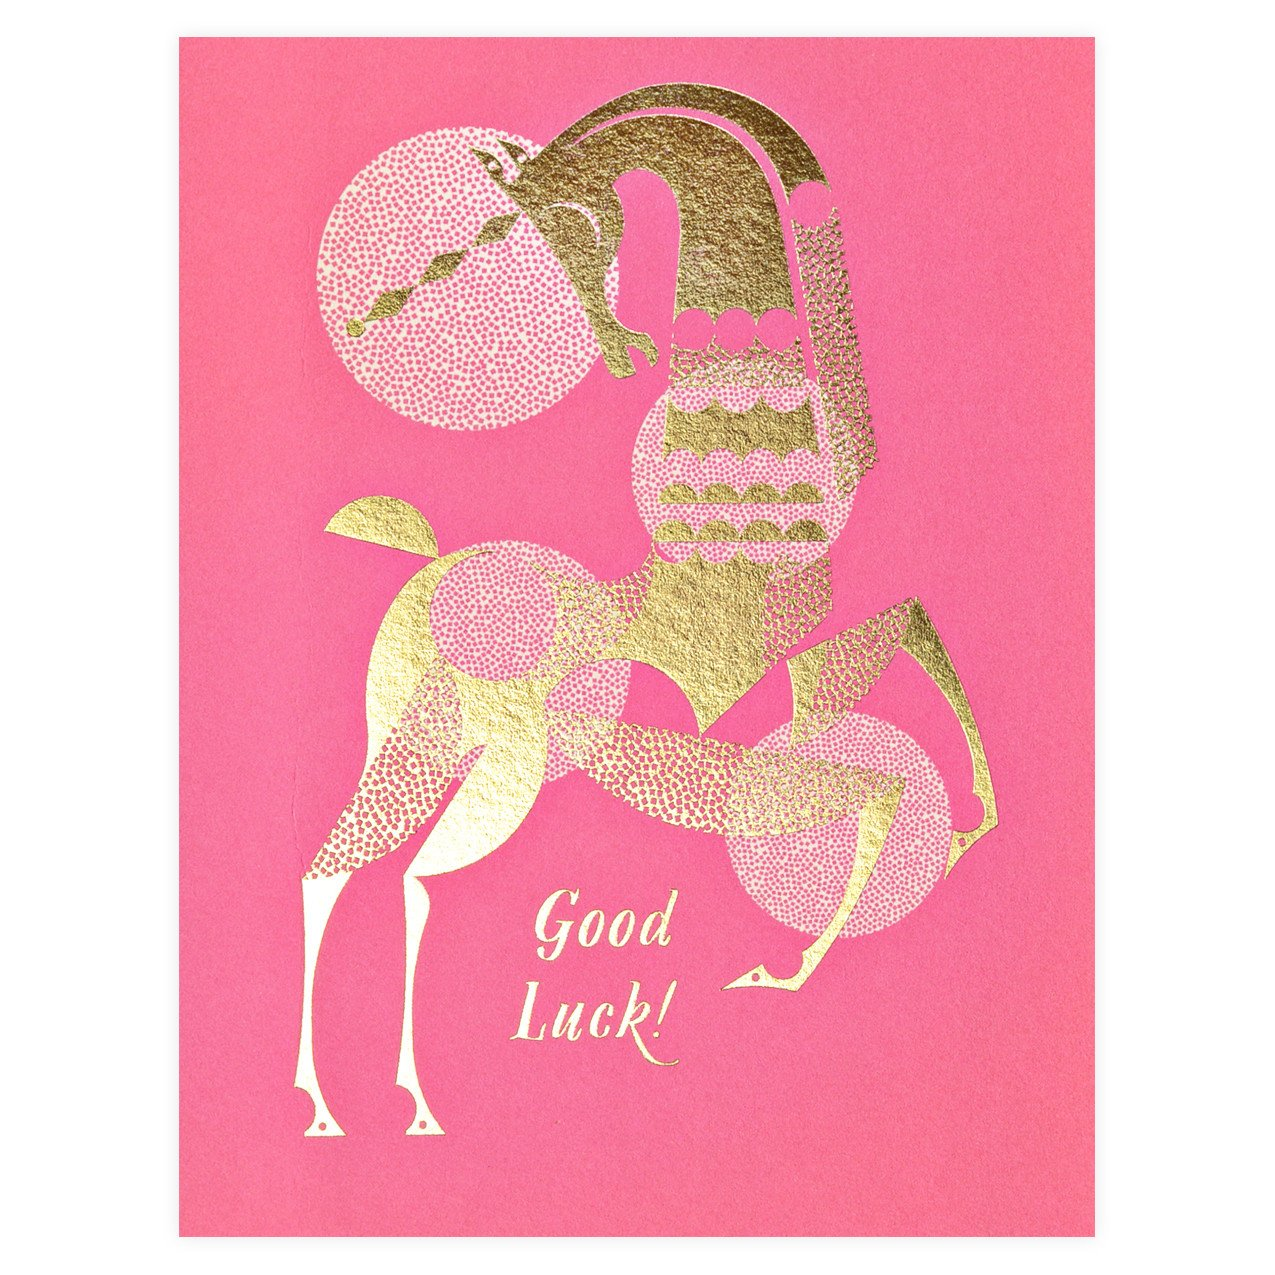 Red cap cards good luck unicorn greeting card greer chicago good luck unicorn greeting card red cap cards greer chicago m4hsunfo